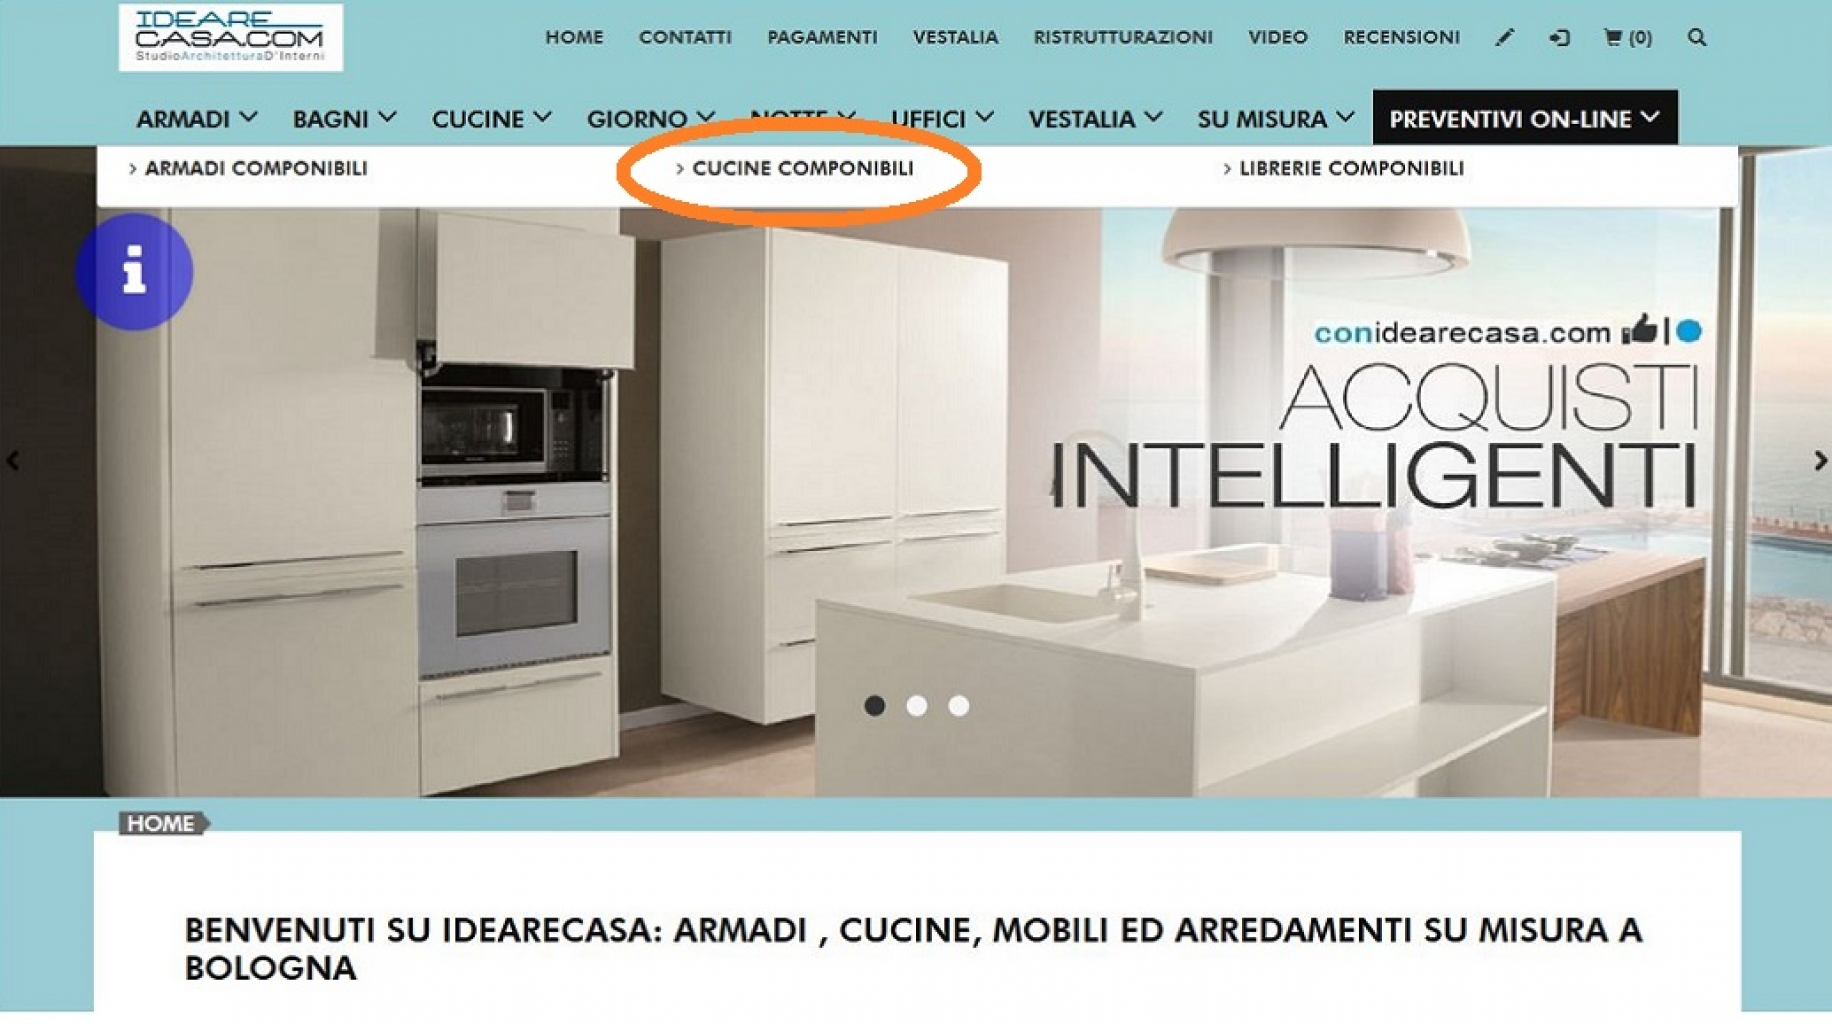 Preventivi on-line di Cucine